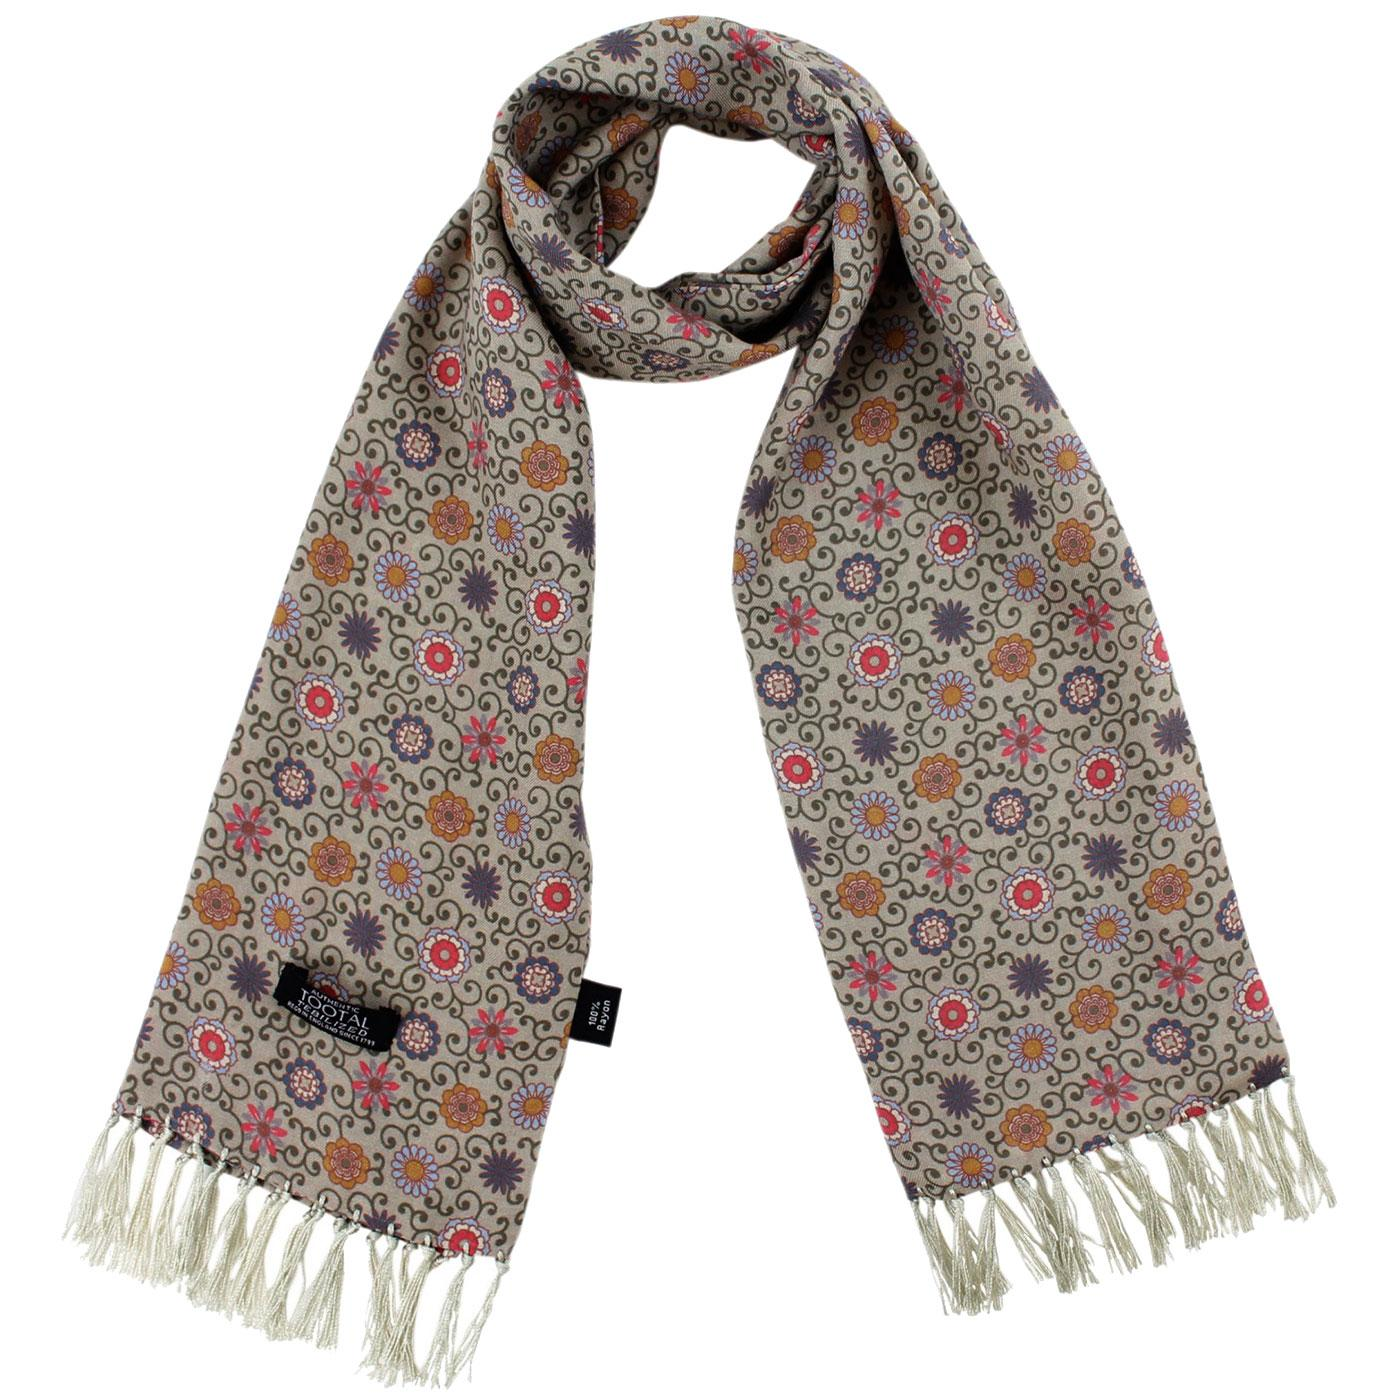 TOOTAL Mod Floral Daisy Chain Rayon Scarf STONE